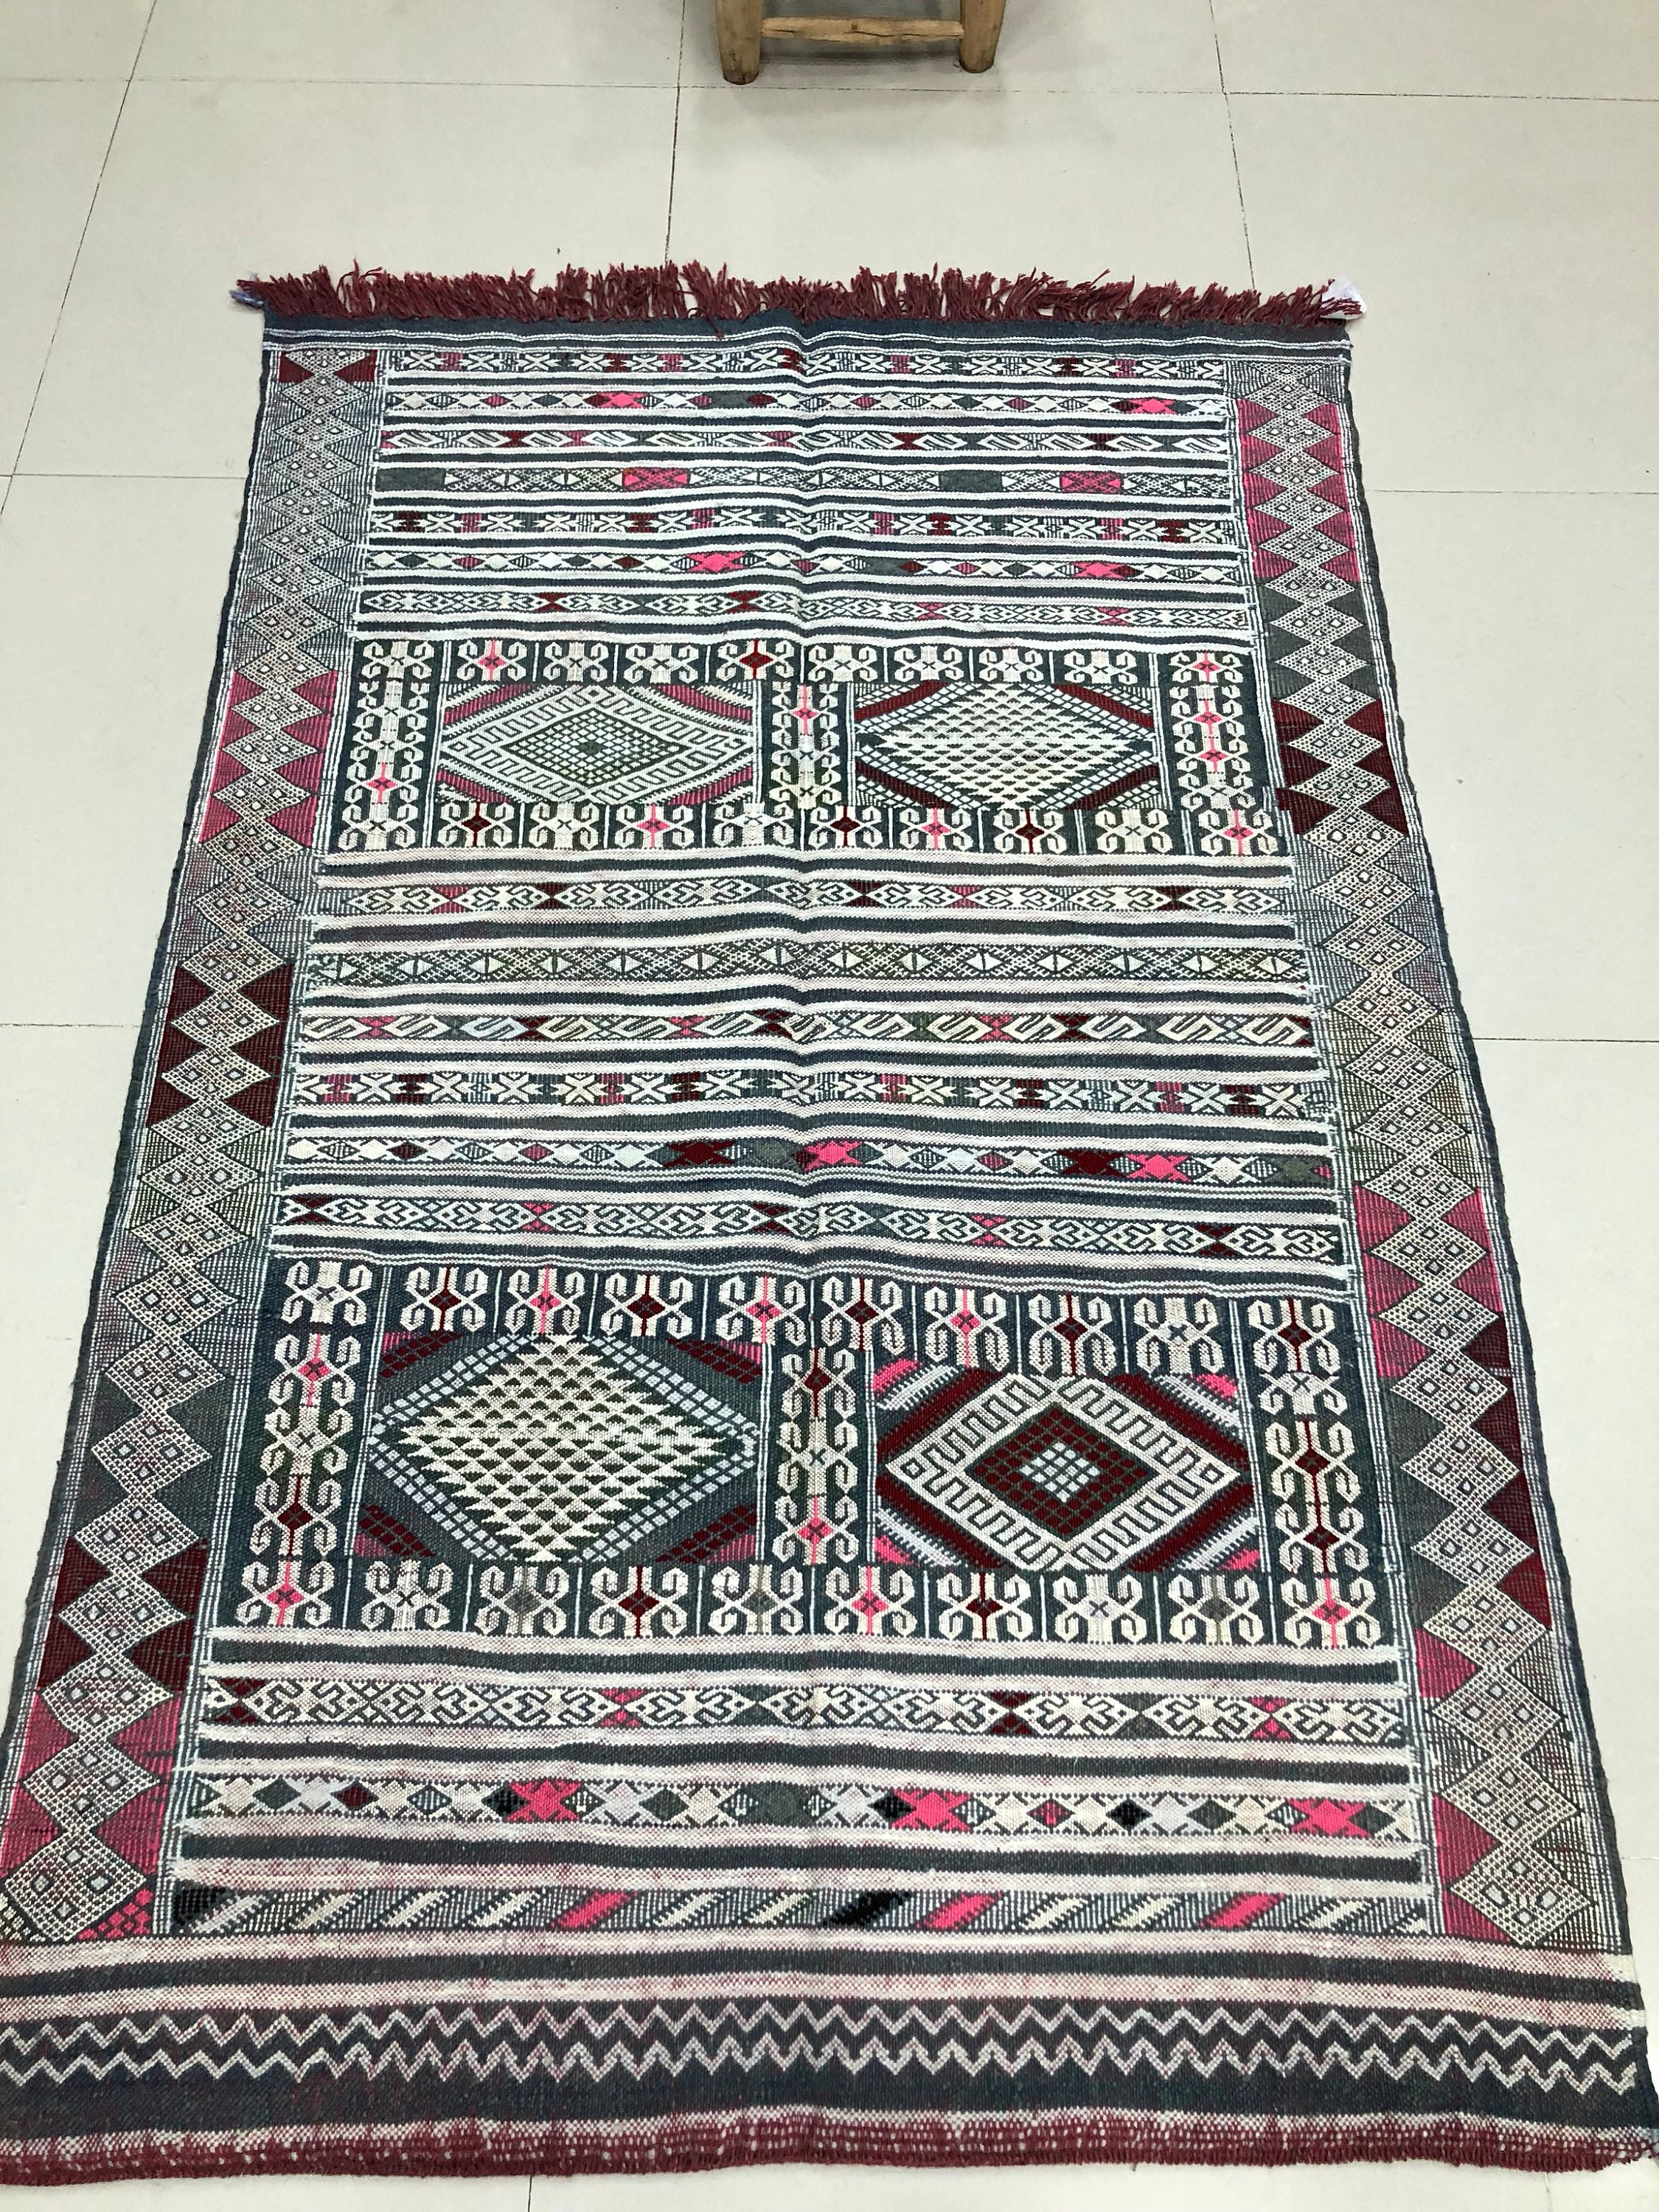 Ck 12 Kellim Hanbal Moroccan Berber Rug From The Atlas